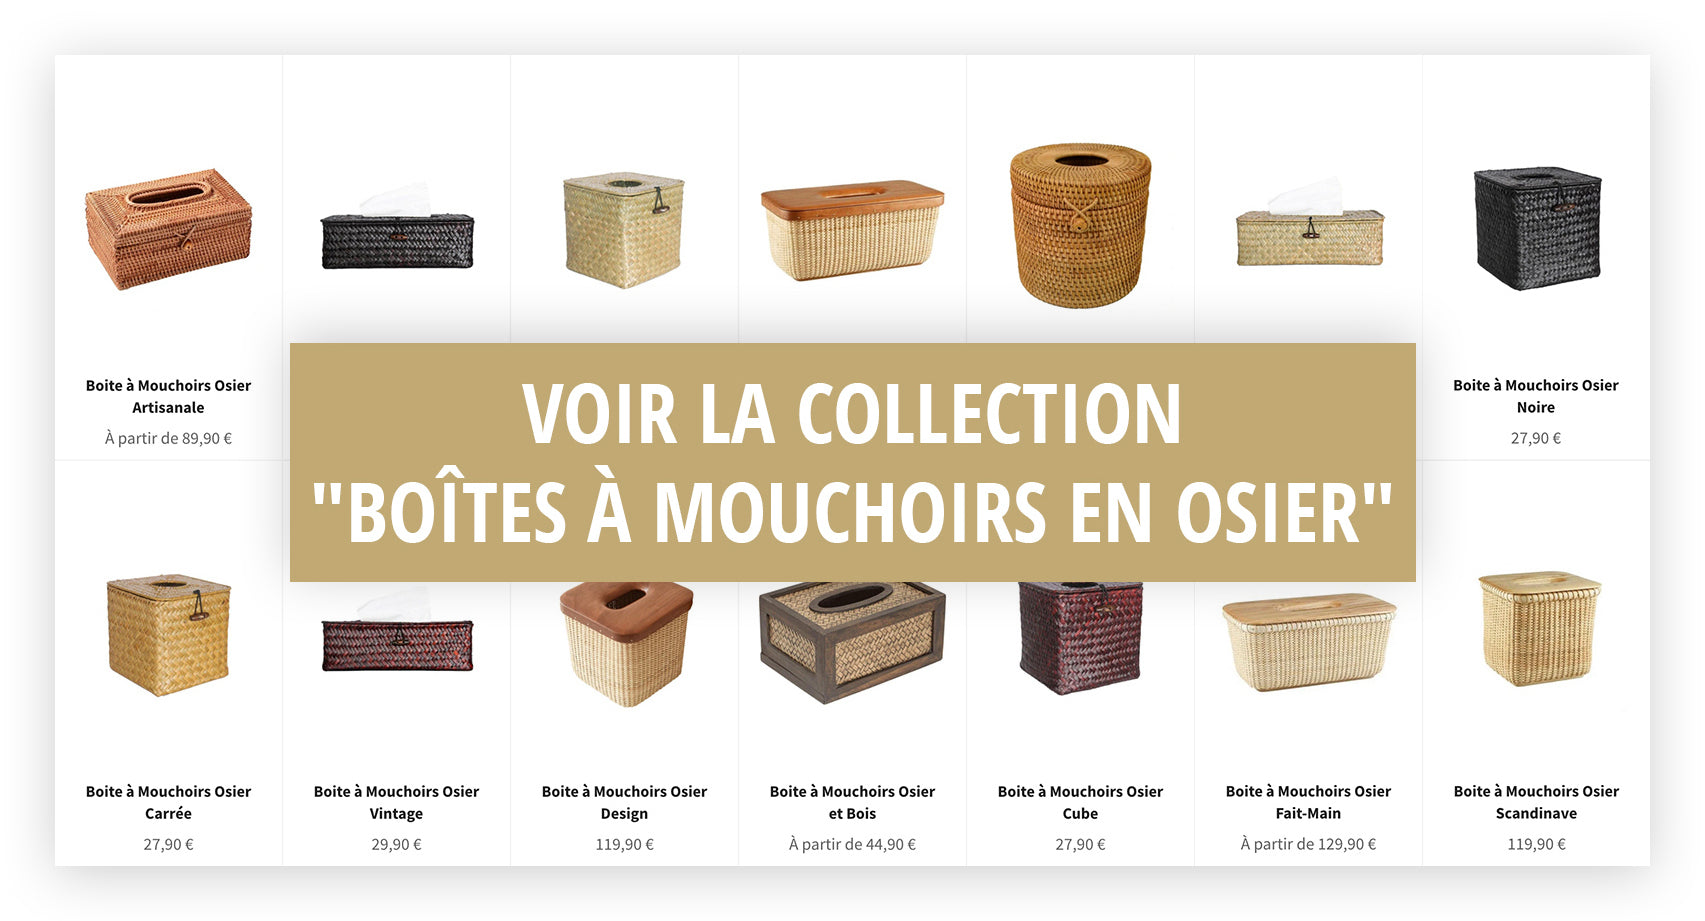 Collection Boite a Mouchoirs Osier